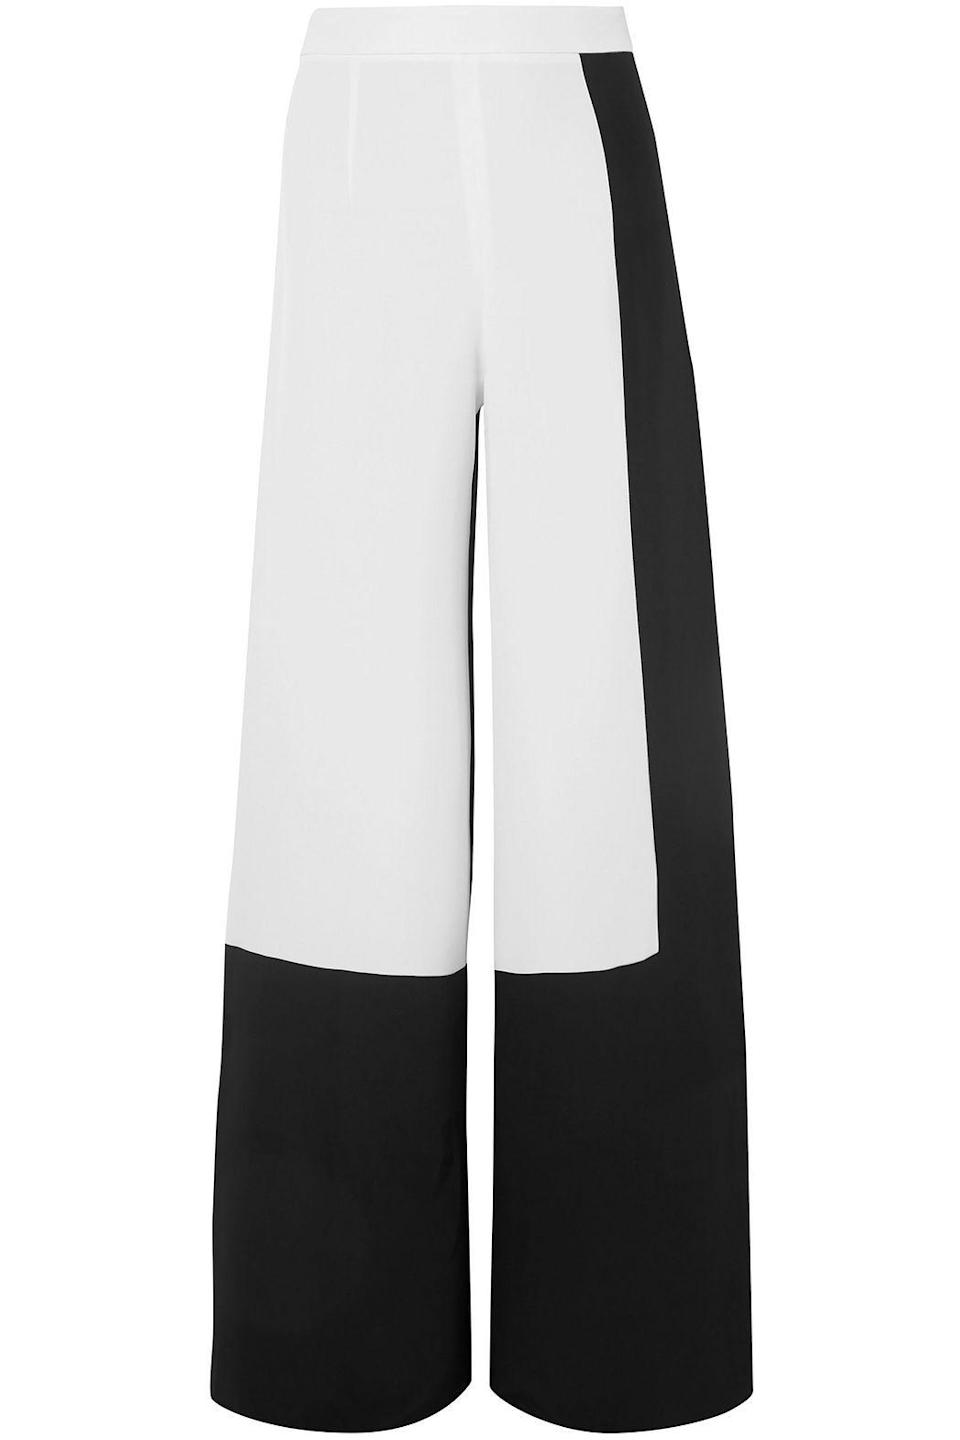 """<p><strong>Cushnie </strong></p><p>theoutnet.com</p><p><strong>$170.00</strong></p><p><a href=""""https://go.redirectingat.com?id=74968X1596630&url=https%3A%2F%2Fwww.theoutnet.com%2Fen-us%2Fshop%2Fproduct%2Fcushnie%2Fpants%2Fwide-leg-pants%2Ftwo-tone-silk-crepe-wide-leg-pants%2F210639978106&sref=https%3A%2F%2Fwww.marieclaire.com%2Ffashion%2Fg33594594%2Fthe-outnet-summer-sale-2020%2F"""" rel=""""nofollow noopener"""" target=""""_blank"""" data-ylk=""""slk:SHOP IT"""" class=""""link rapid-noclick-resp"""">SHOP IT</a></p><p>Finding a Cushnie design for under $200 is like discovering a pot of gold at the end of a rainbow. </p>"""